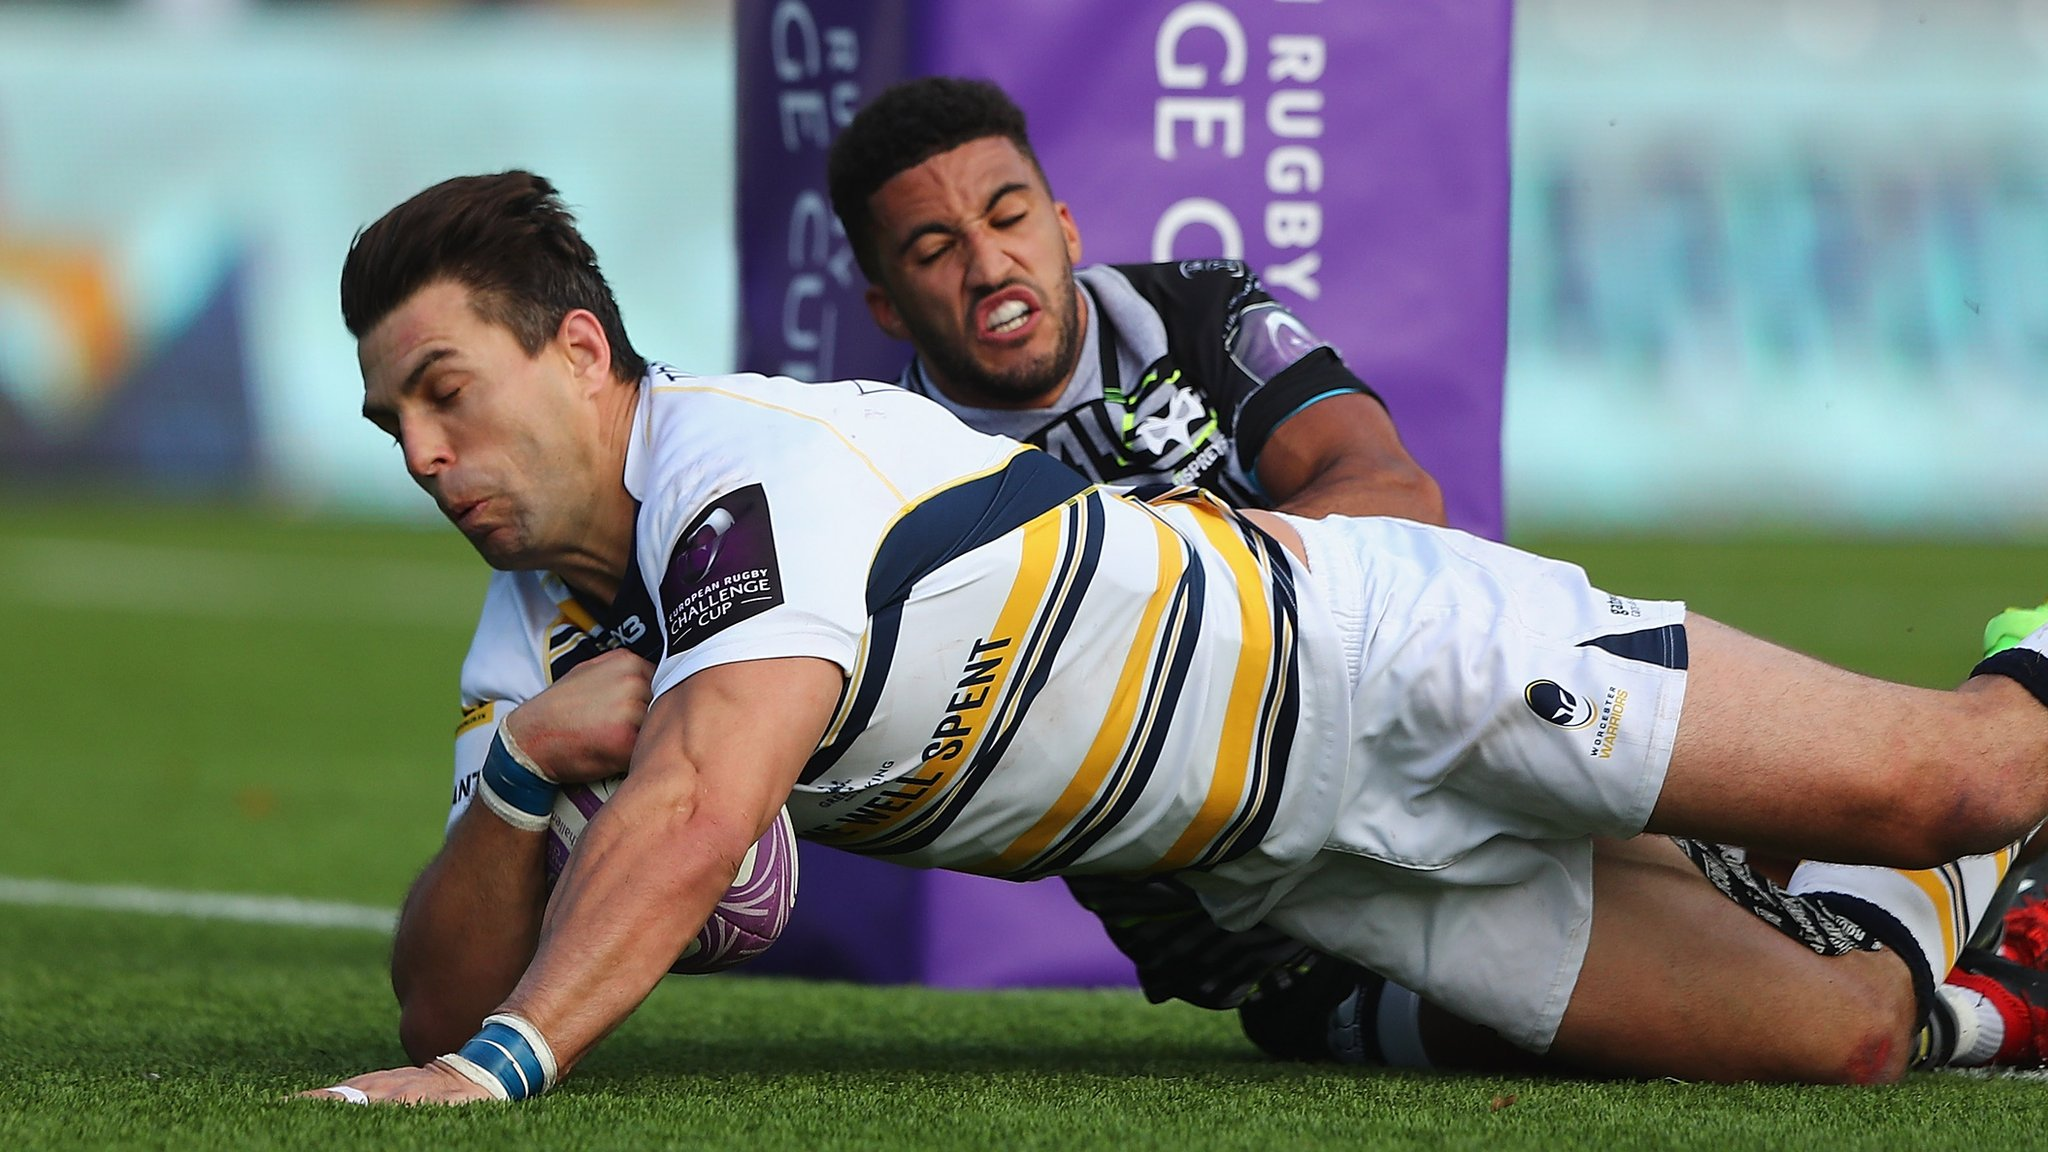 European Rugby Challenge Cup: Worcester 27-21 Ospreys